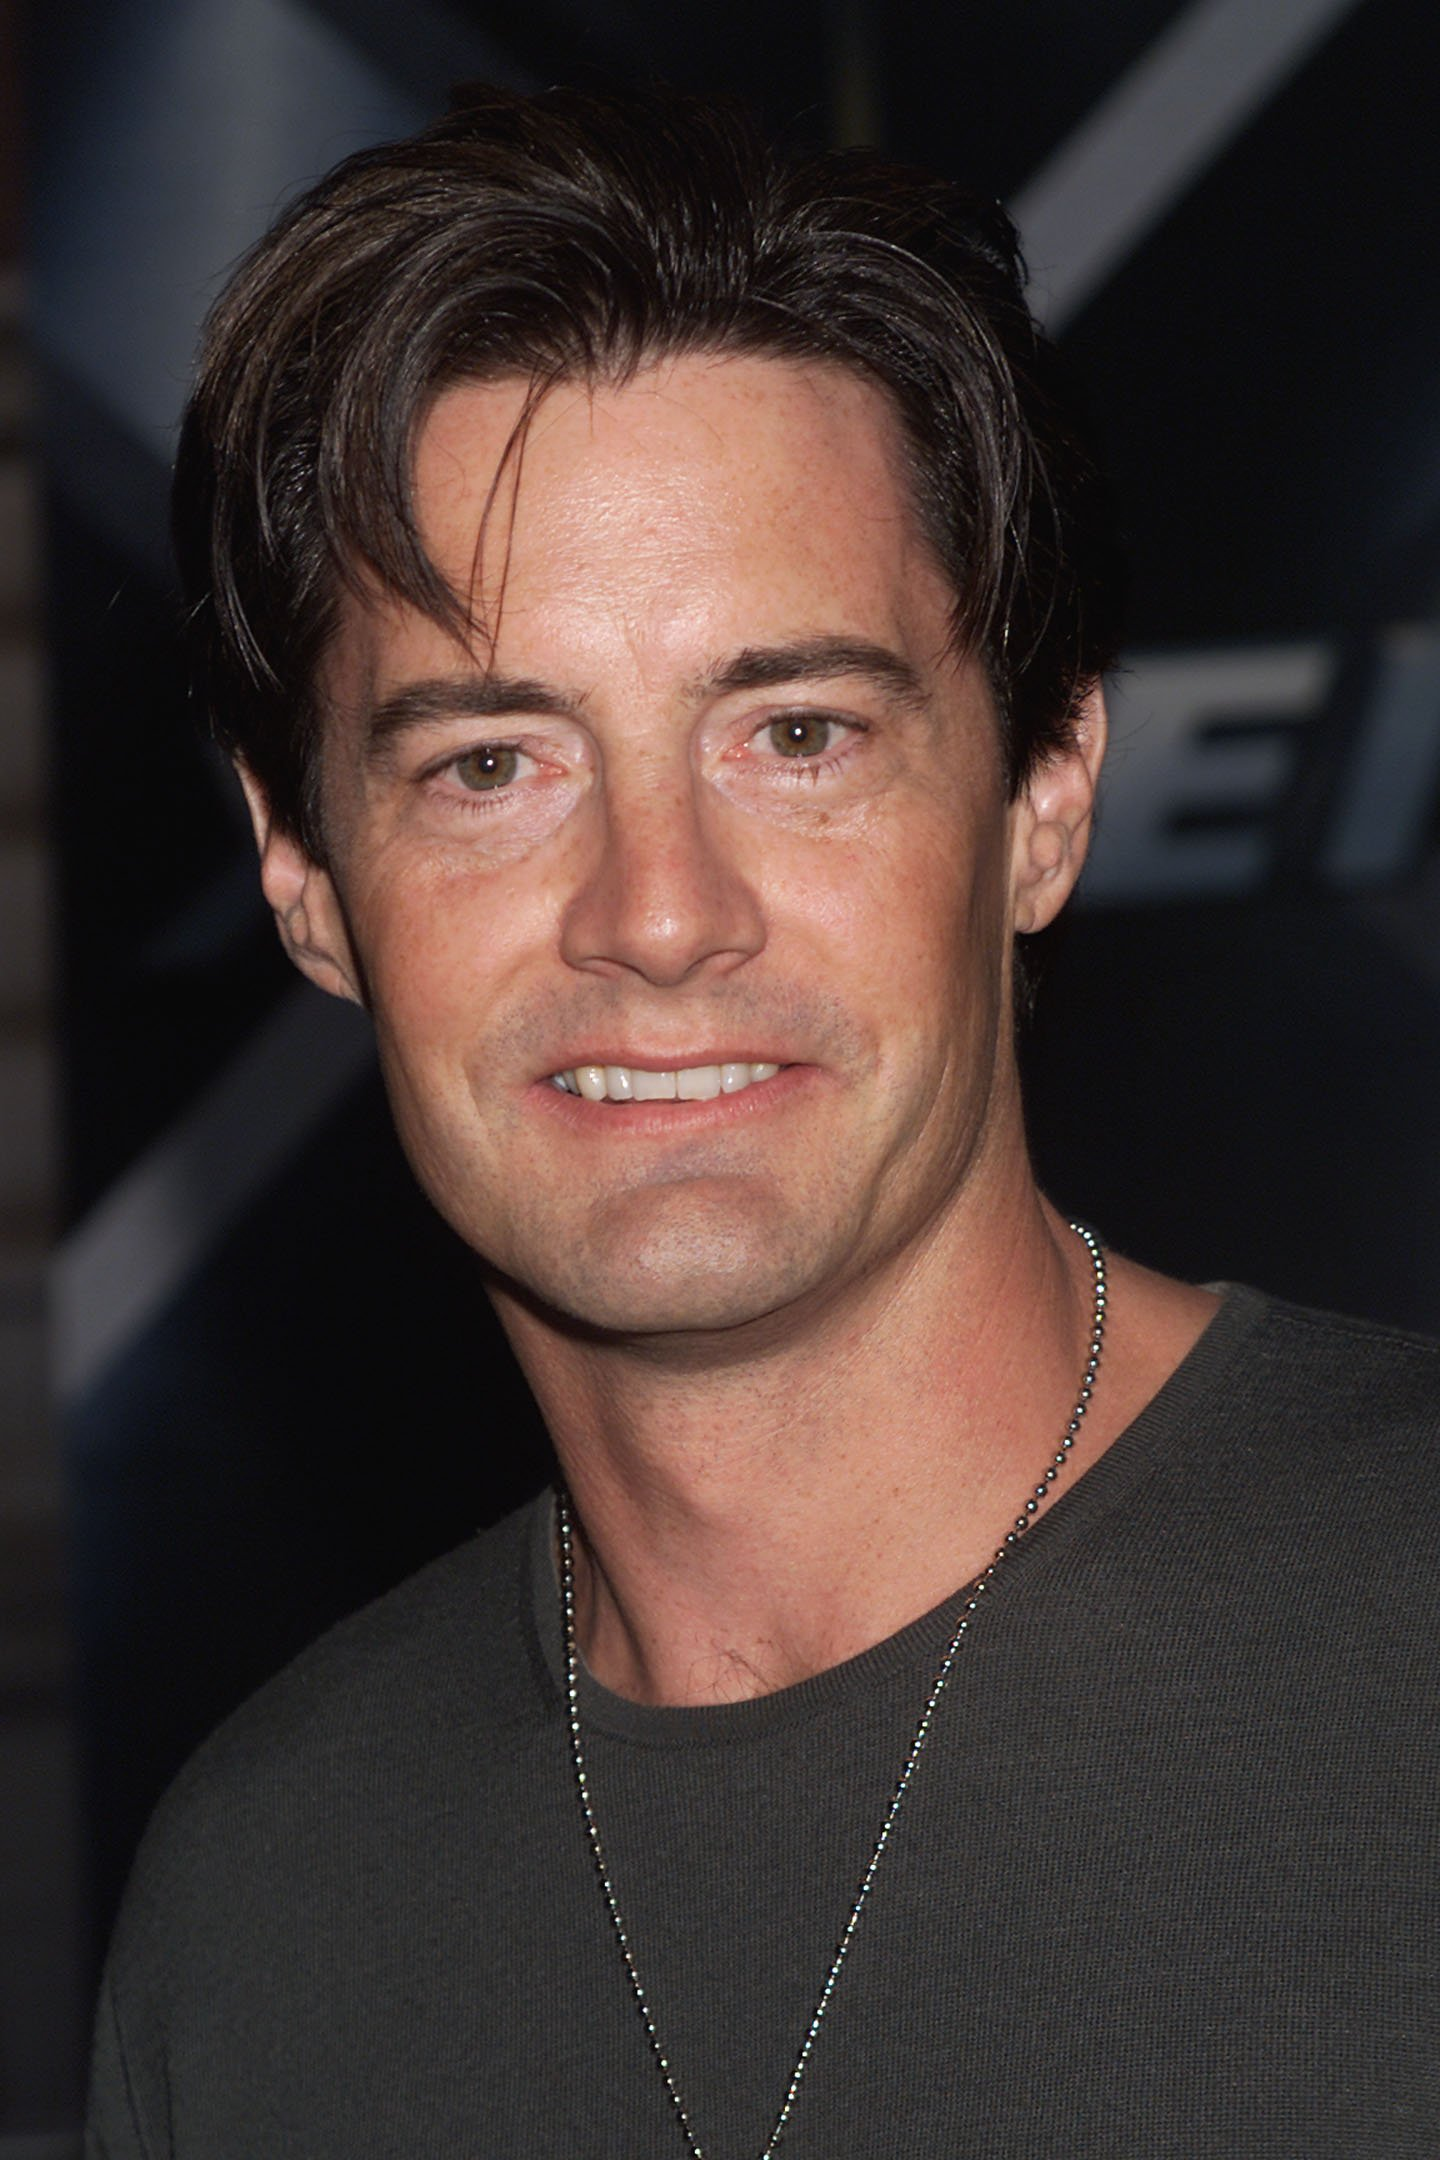 Kyle Maclachlan at 'X-Men' Premiere in Nyc on July 12, 2000. | Source: Getty Images.